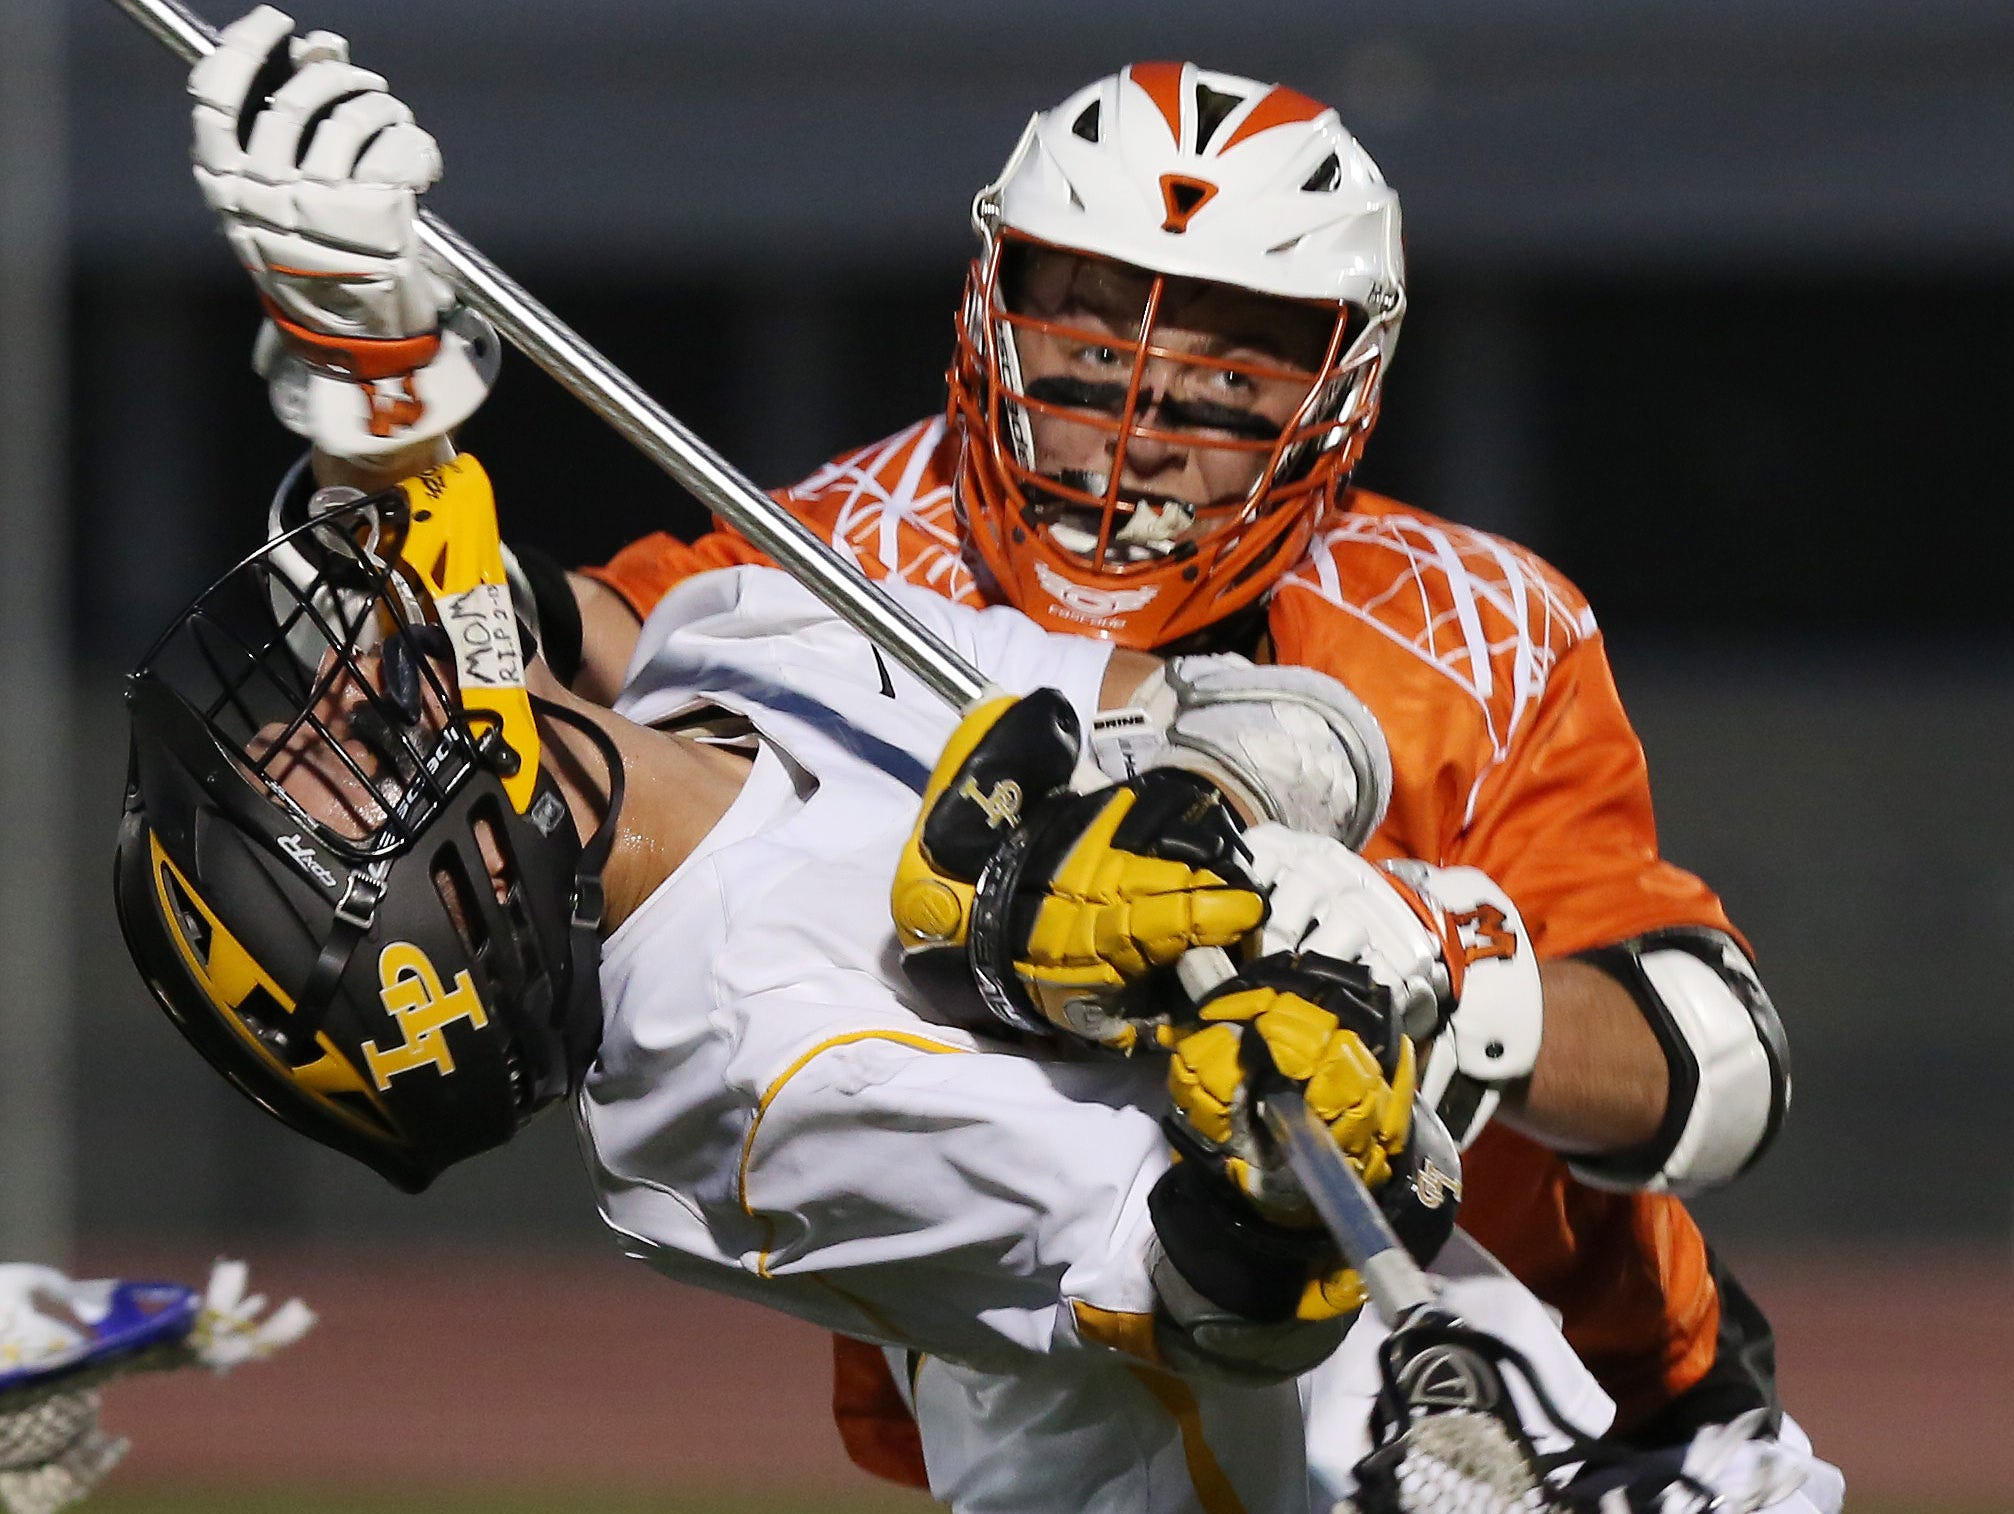 Lakeland/Panas' Joseph Cortese (1) takes a big hit from Mamaroneck's Matt Brodie (10) during the Section 1 championship game at White Plains High School May 25, 2016.